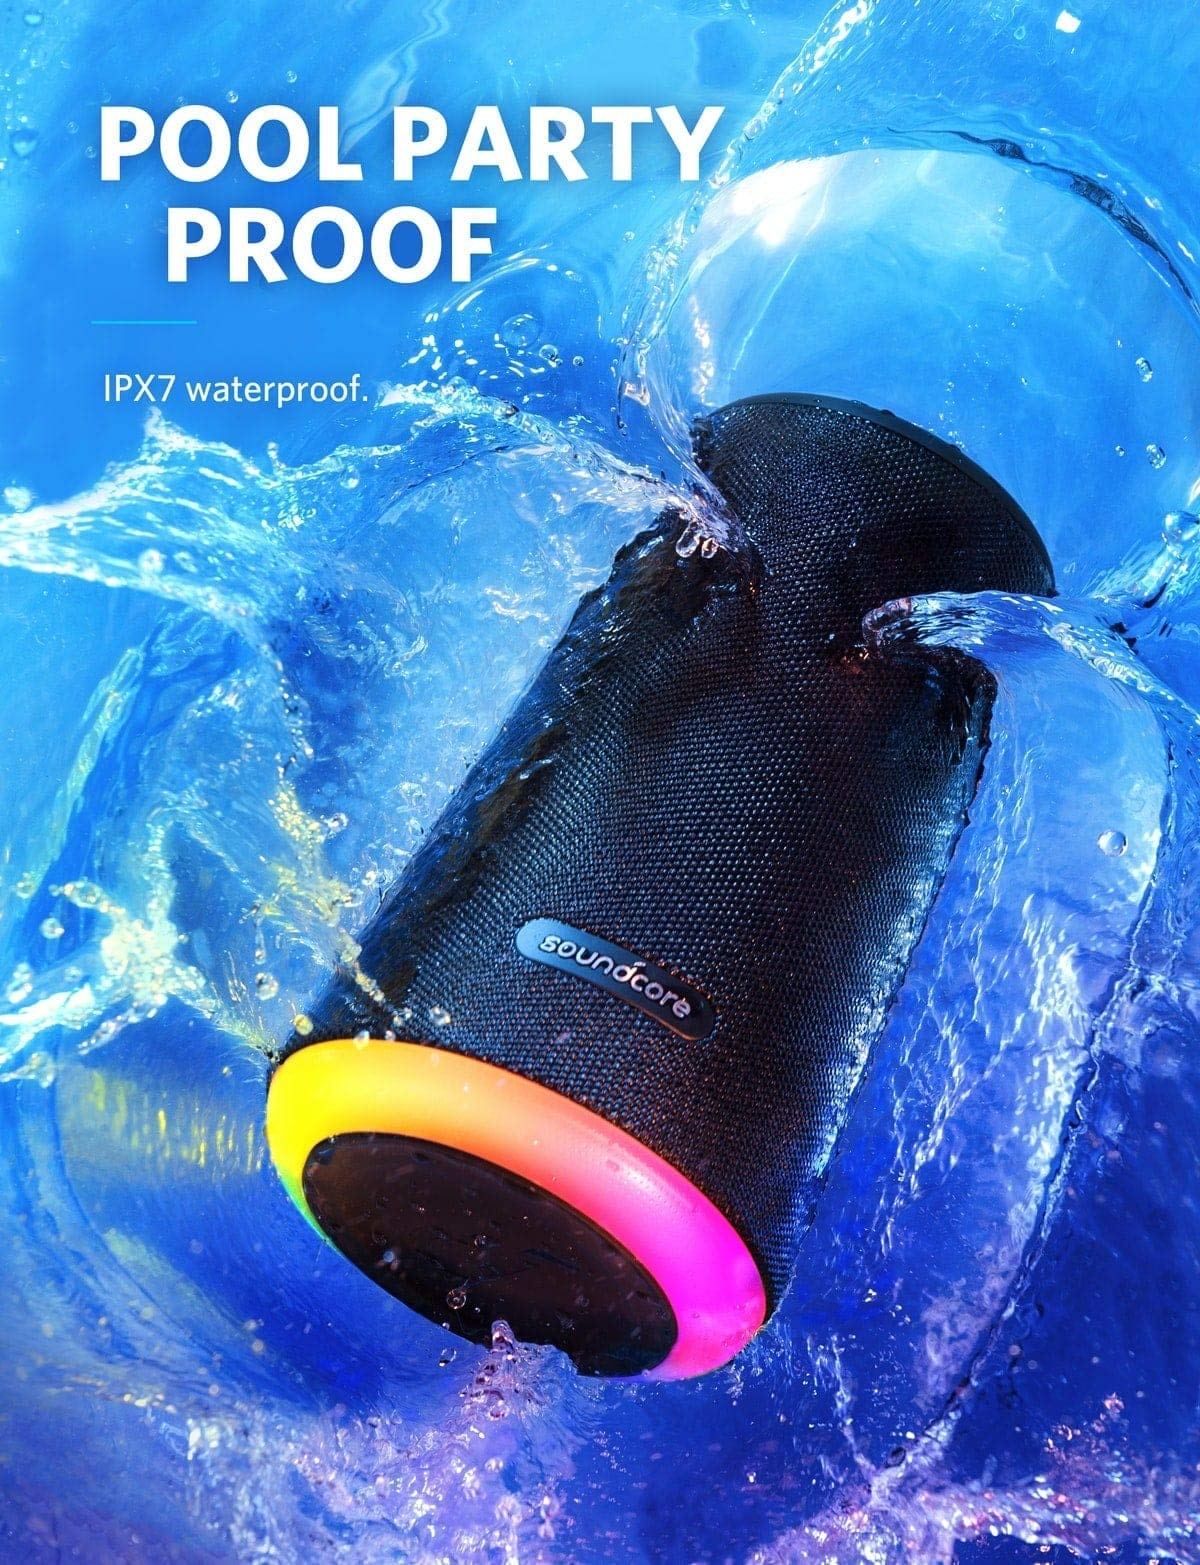 2-Pack] Soundcore Flare Portable Bluetooth 360° Speaker by Anker, with All-Round Sound, Wireless Stereo Pairing, Enhanced Bass & Ambient LED Light, and IPX7 Waterproof Rating - Black- Buy Online in Bahrain at